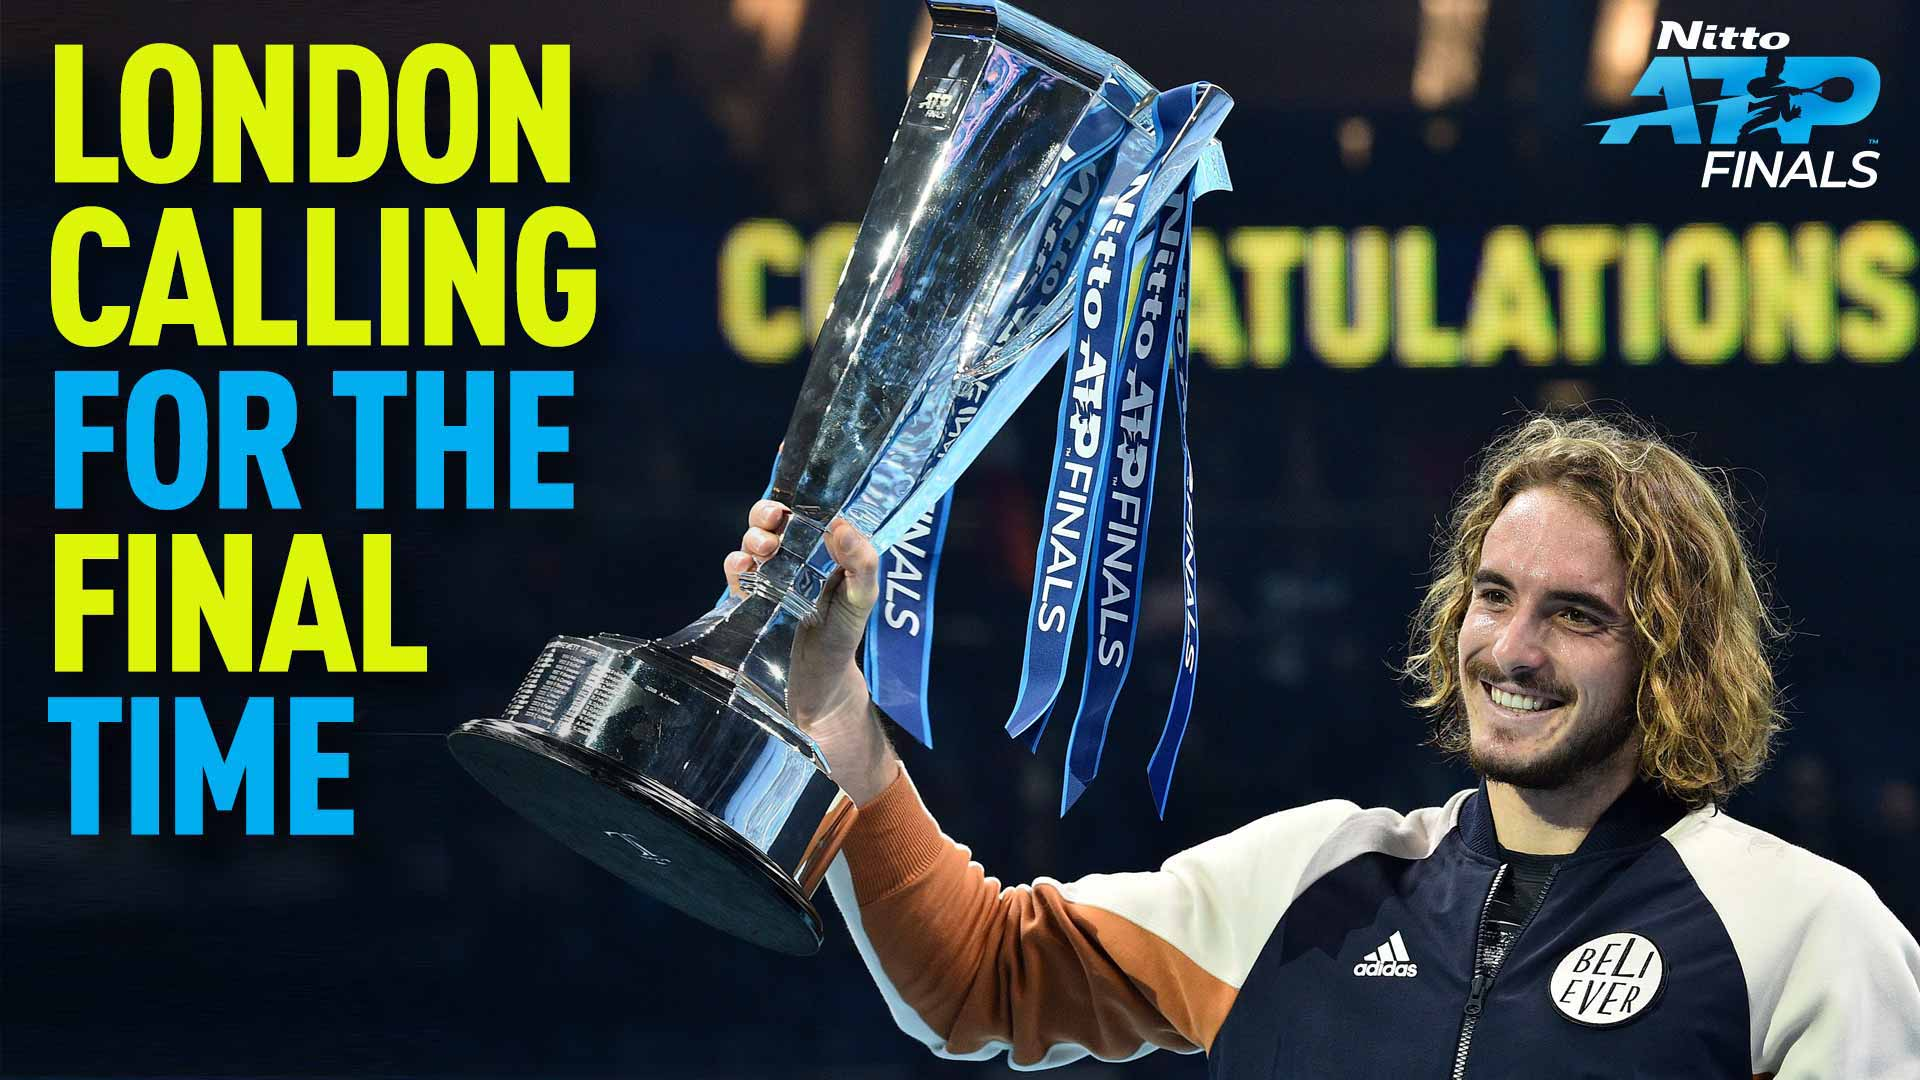 Stefanos Tsitsipas, 2019 Nitto ATP Finals champion at The O2, London